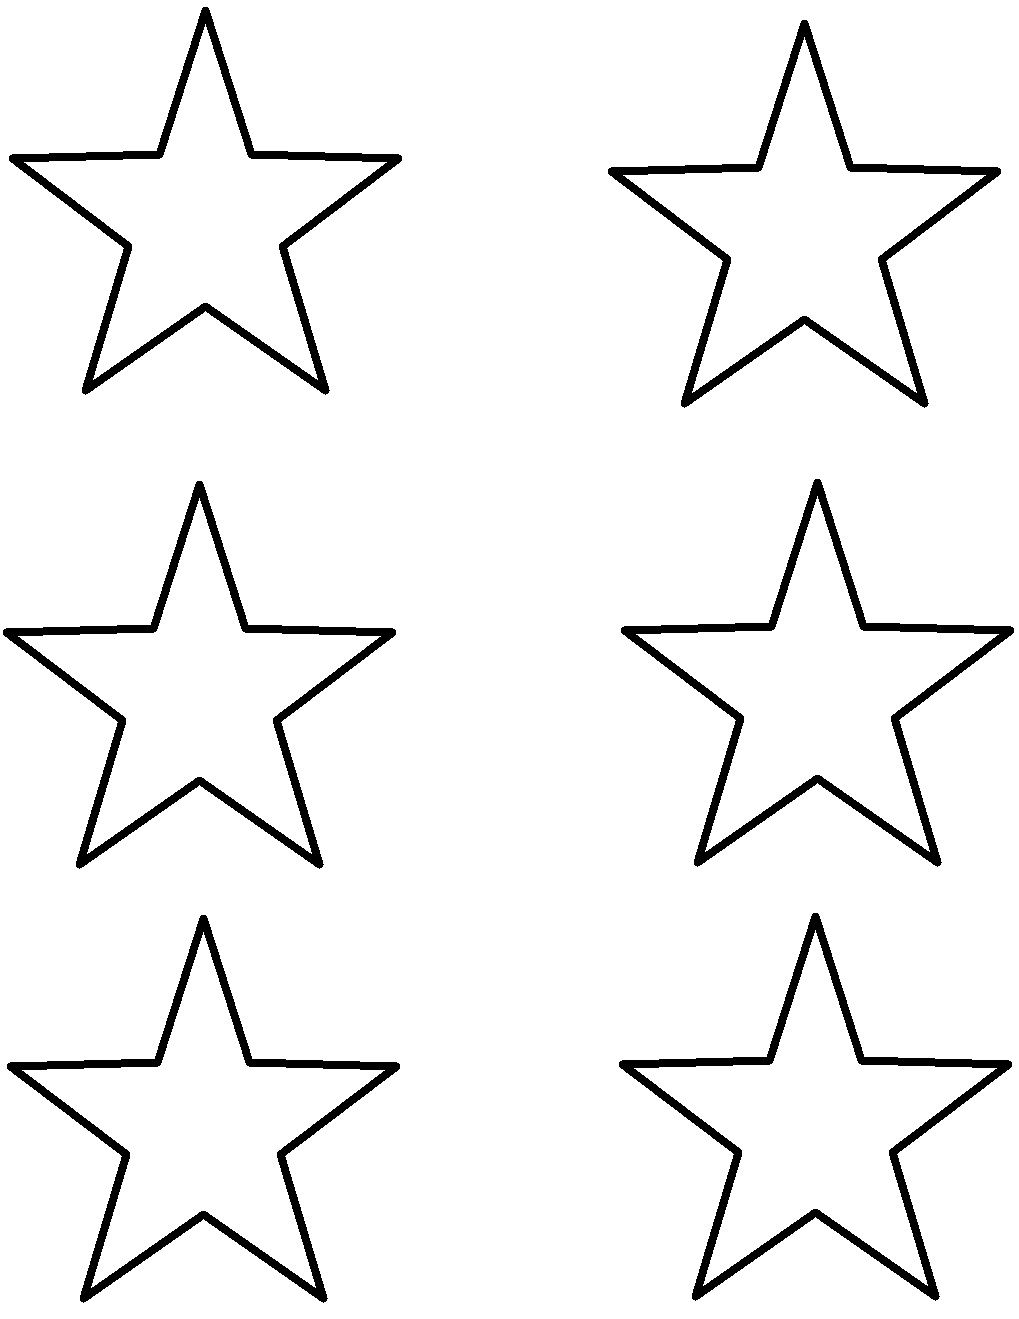 stars to print crayons if you print template out books worth